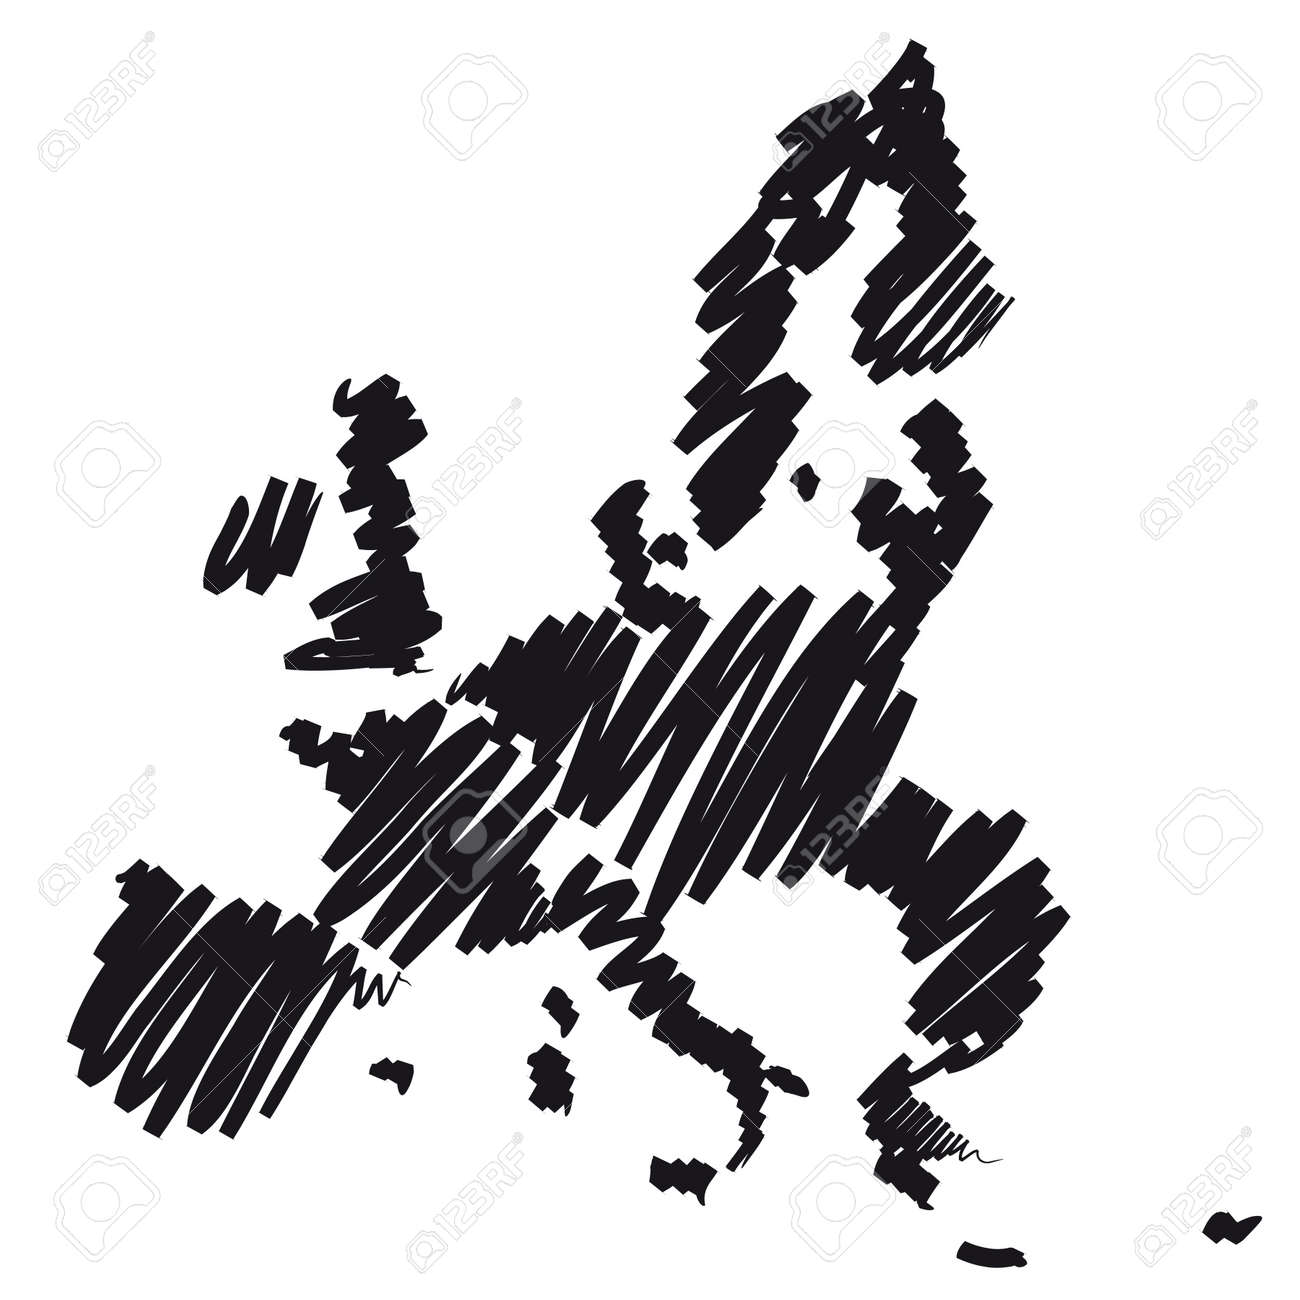 Map sketch Europe Stock Photo - 10619213